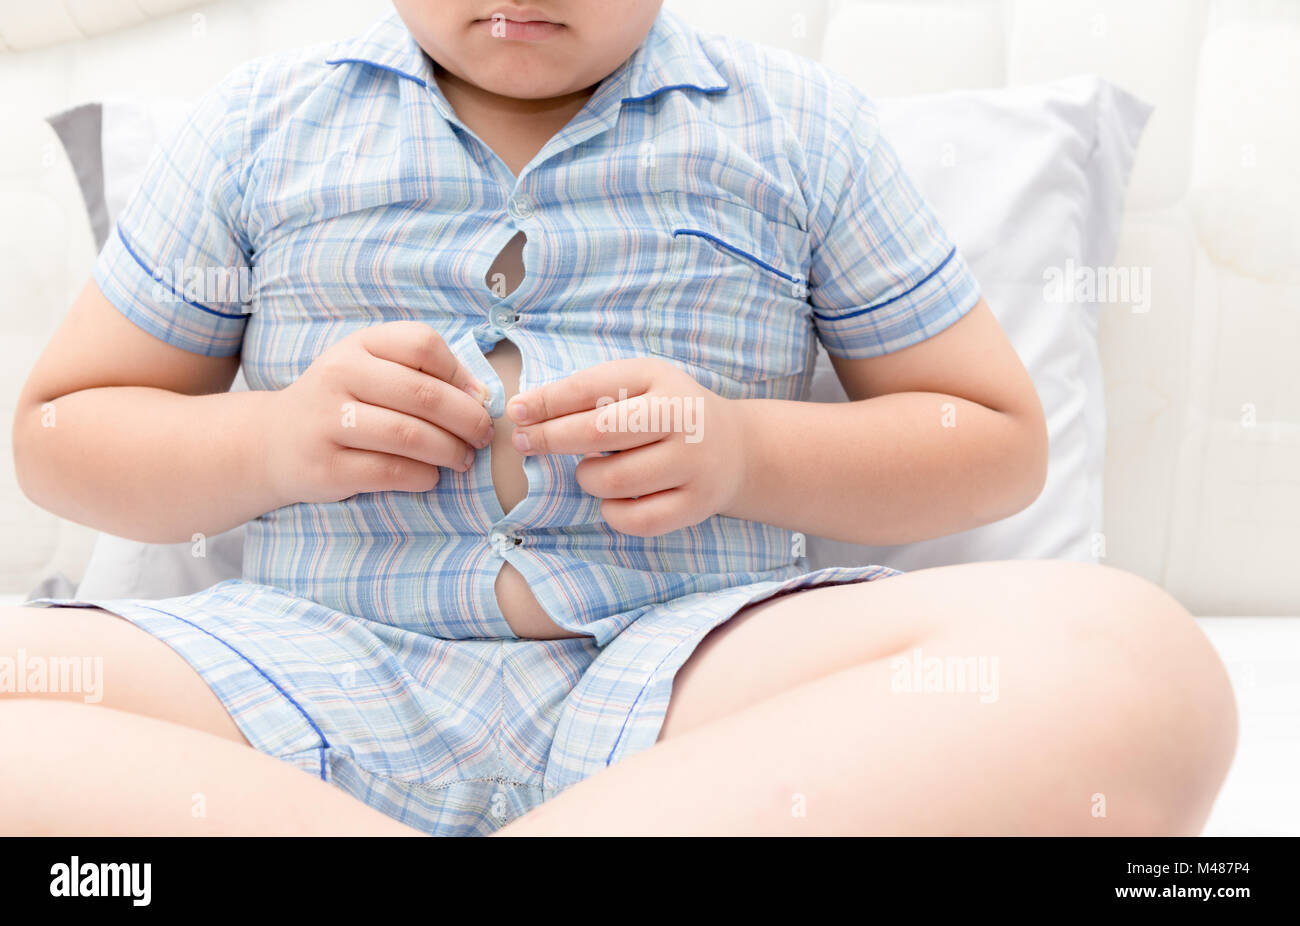 Obese fat boy overweight. Tight shirt of pajamas, healthy concept - Stock Image